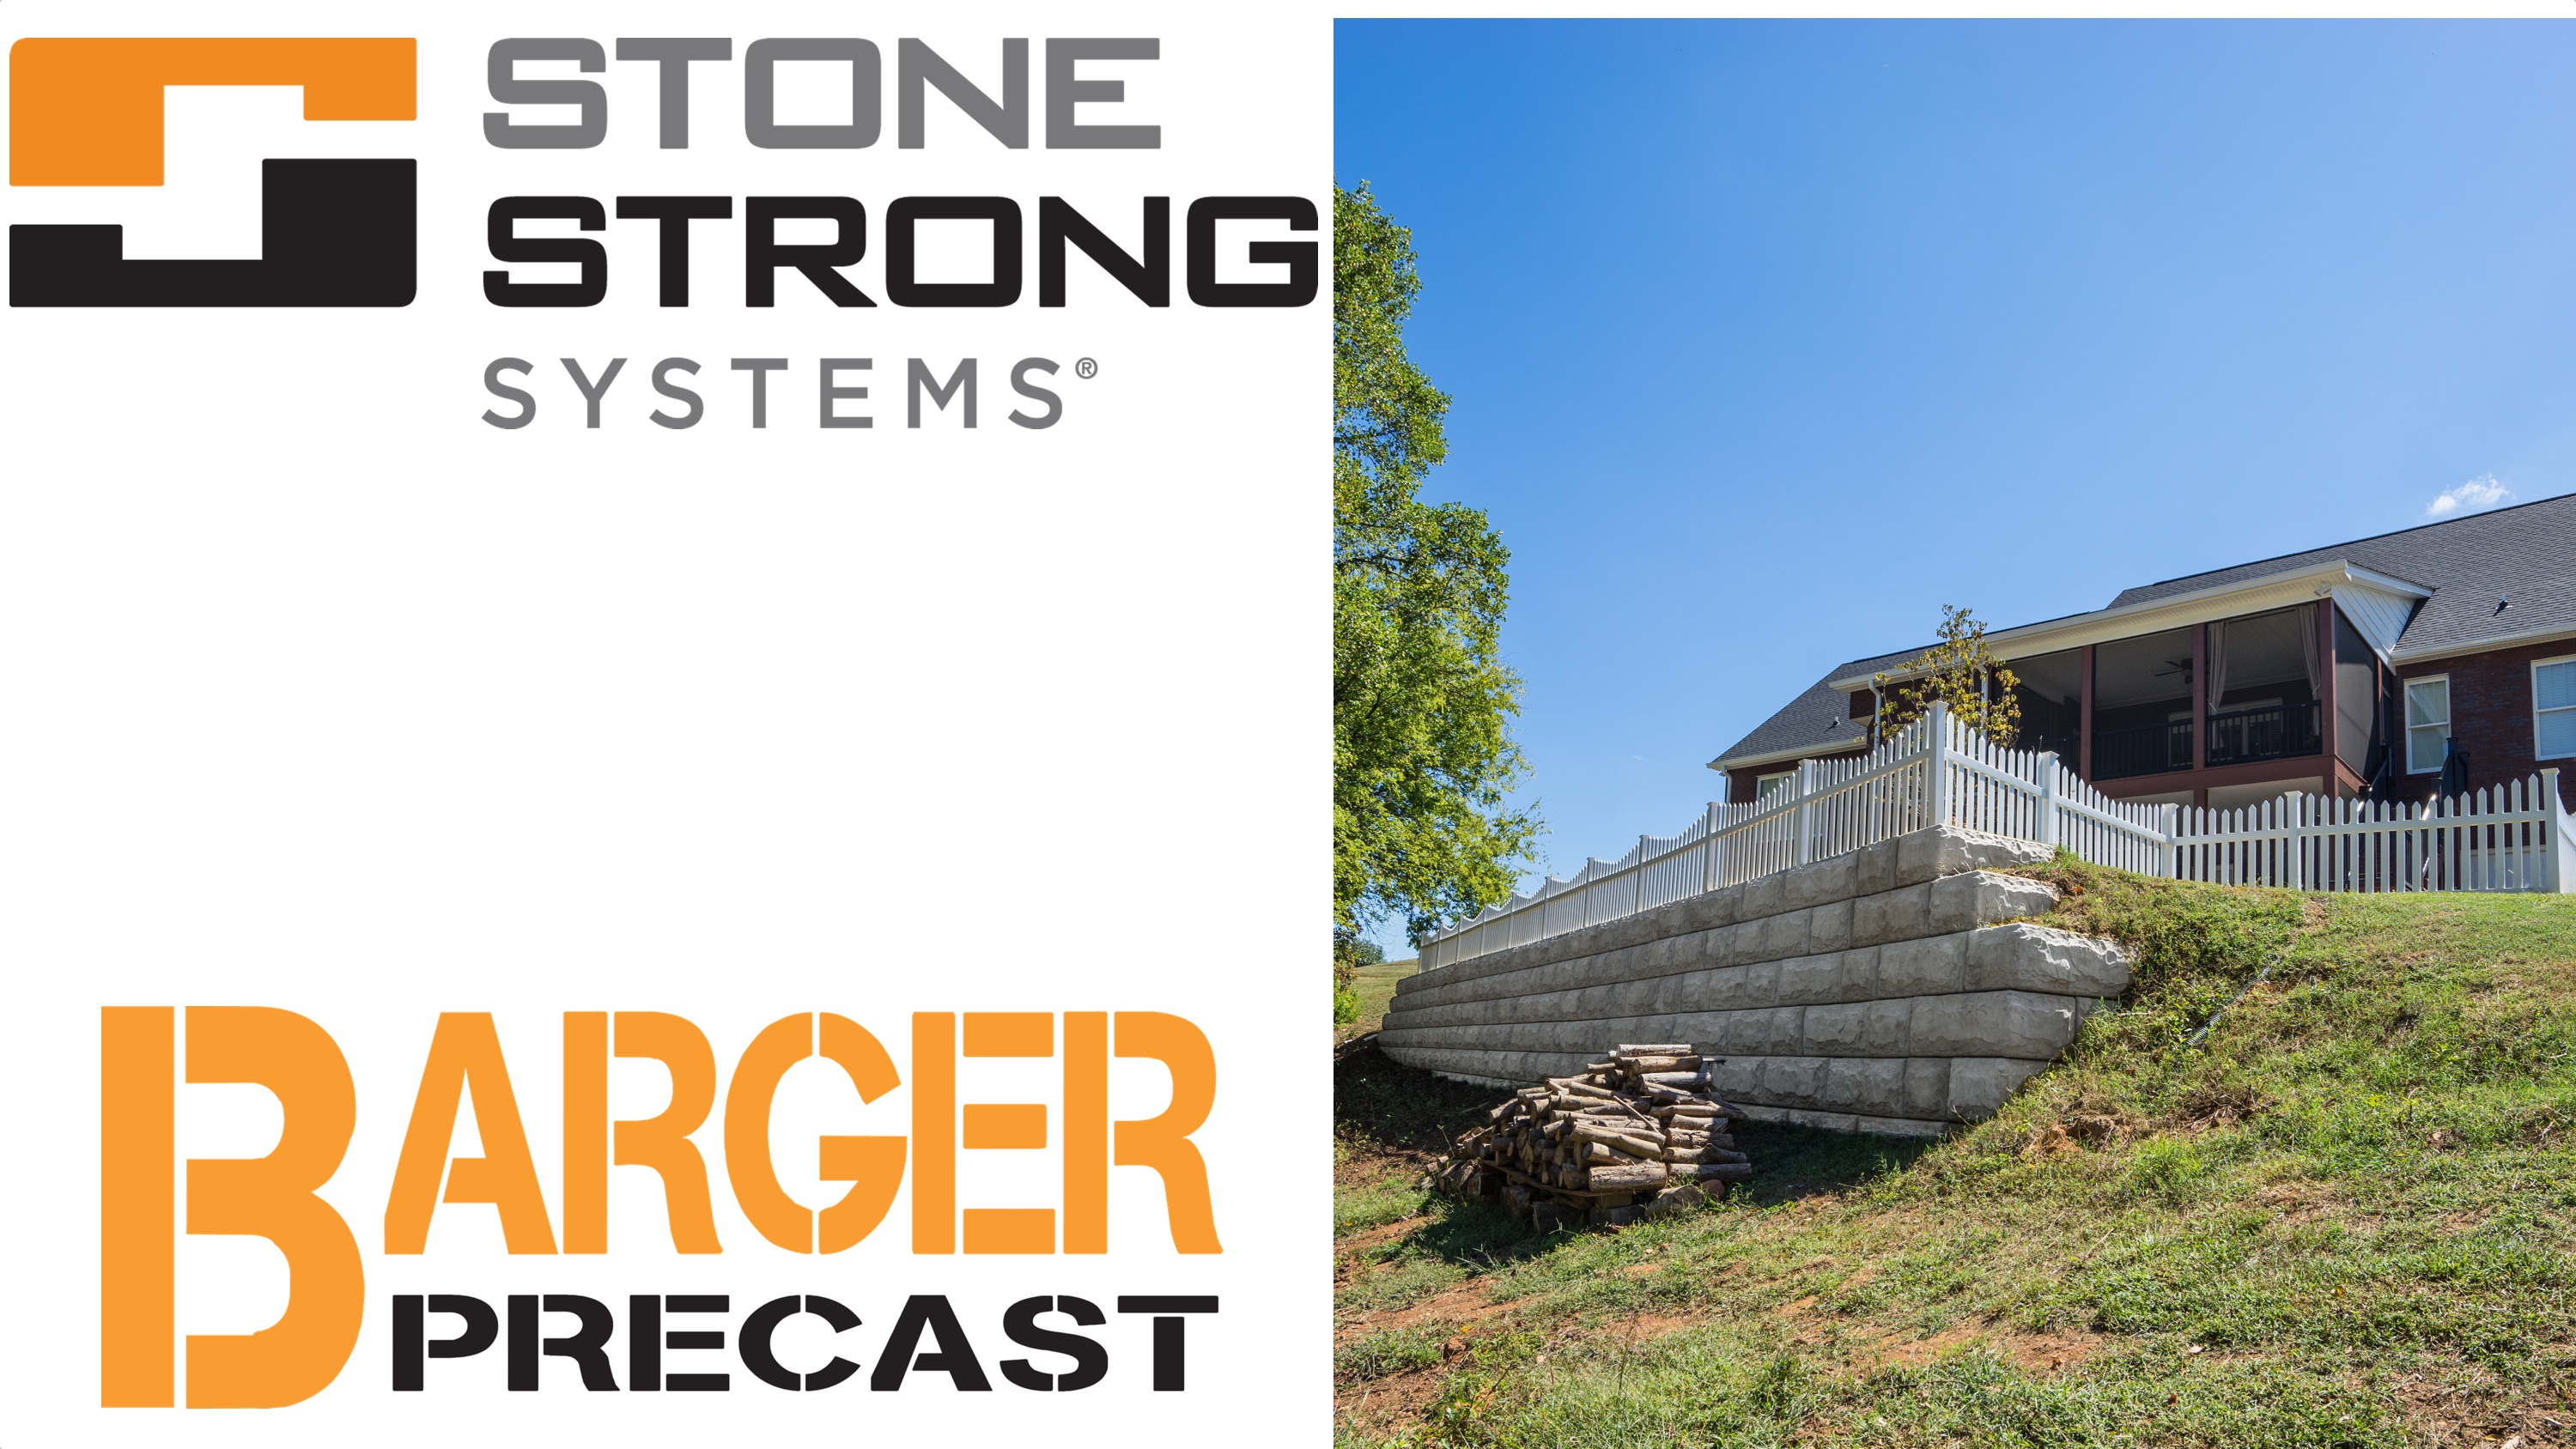 Residential Stone Strong Retaining Wall